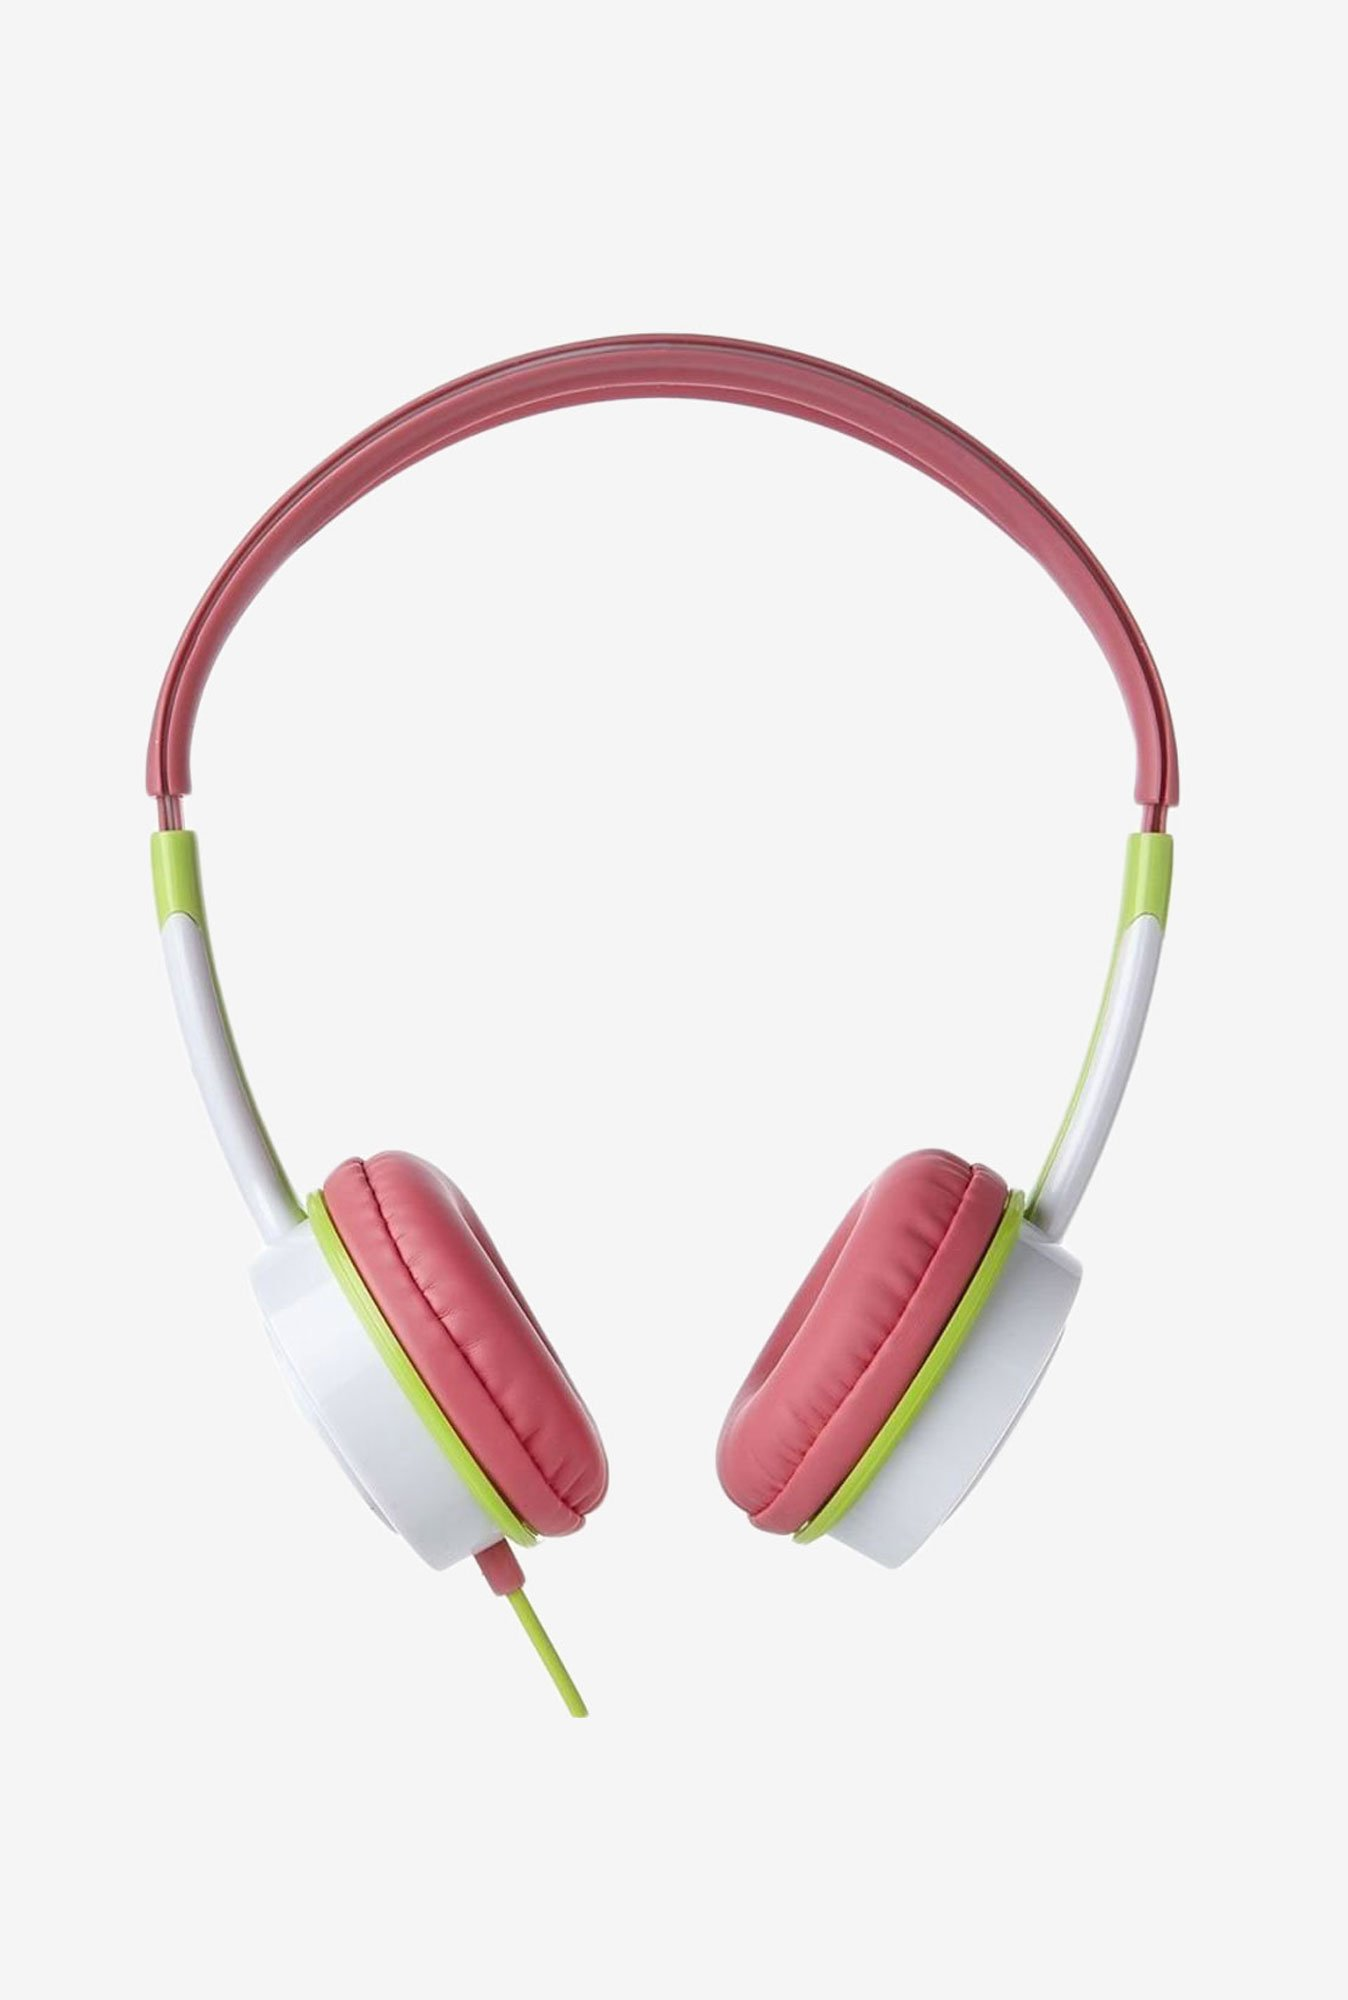 iFrogz Audio Little Rockers Headphones Pink & Green